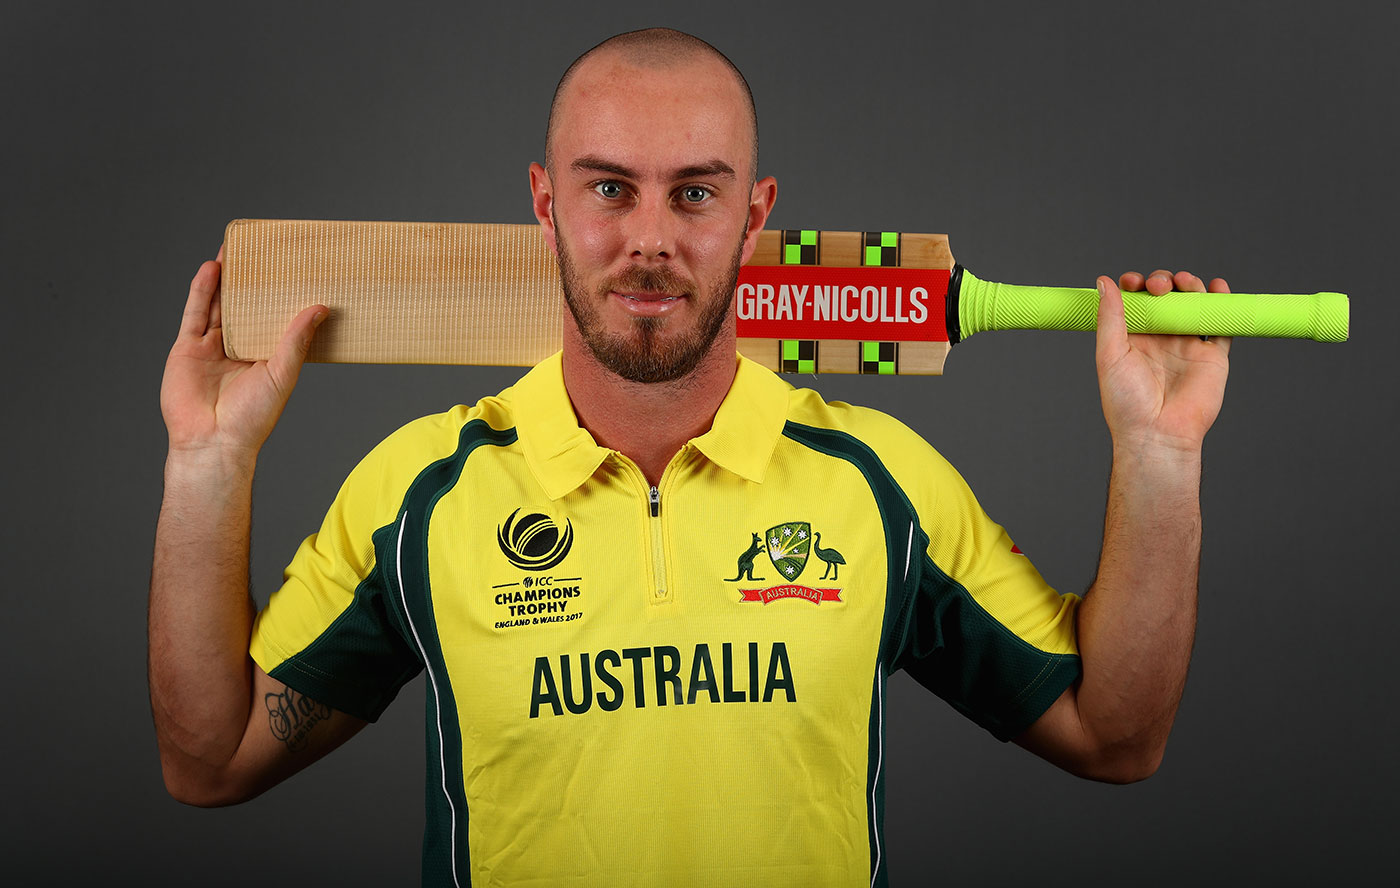 What Do you Want Out of Life? Asks Chris Lynn as He Looks Happy to Pursue T20 Career Over Earning Baggy Green